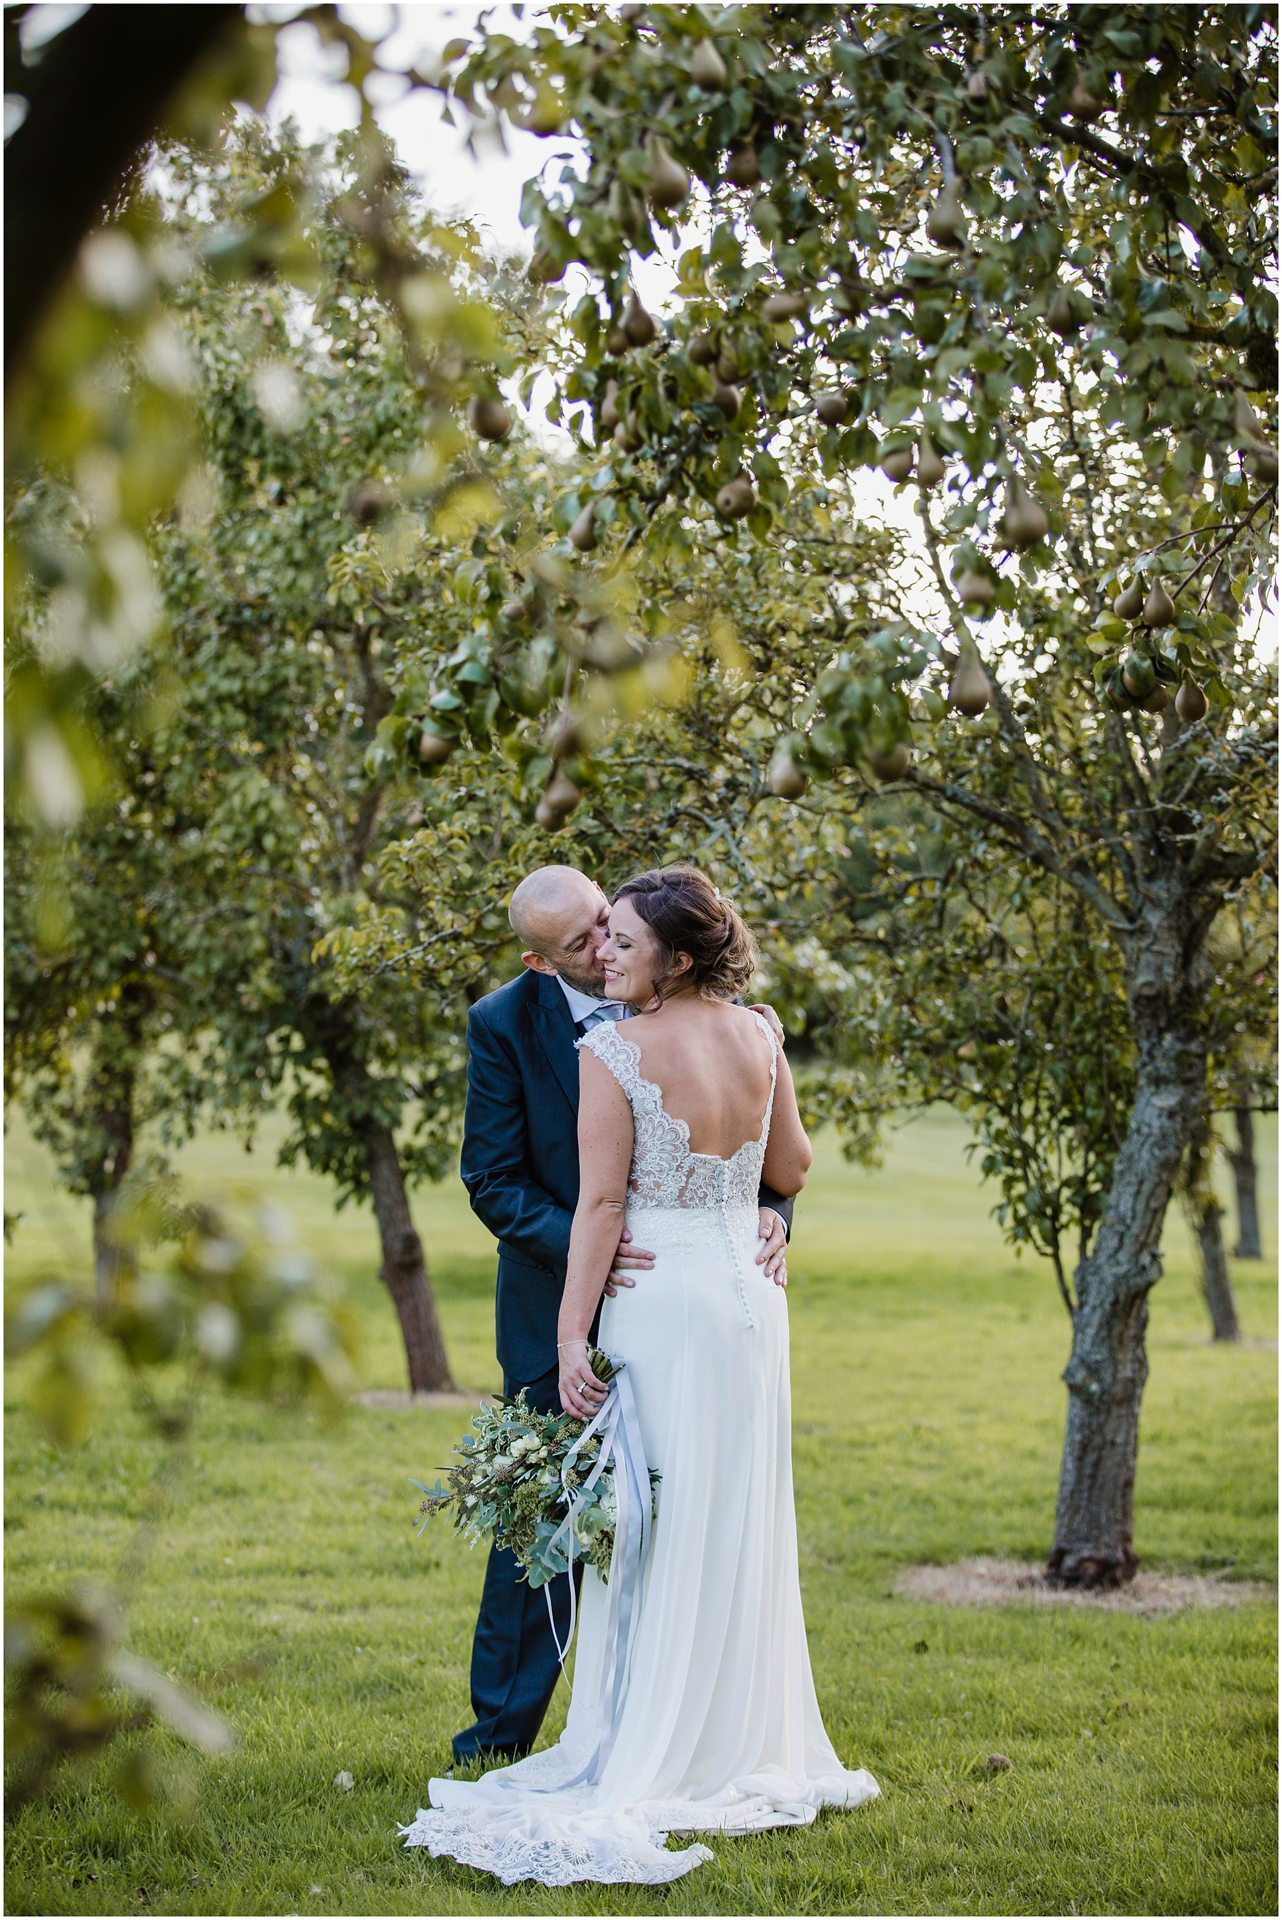 Golden hour at Norwood Park wedding